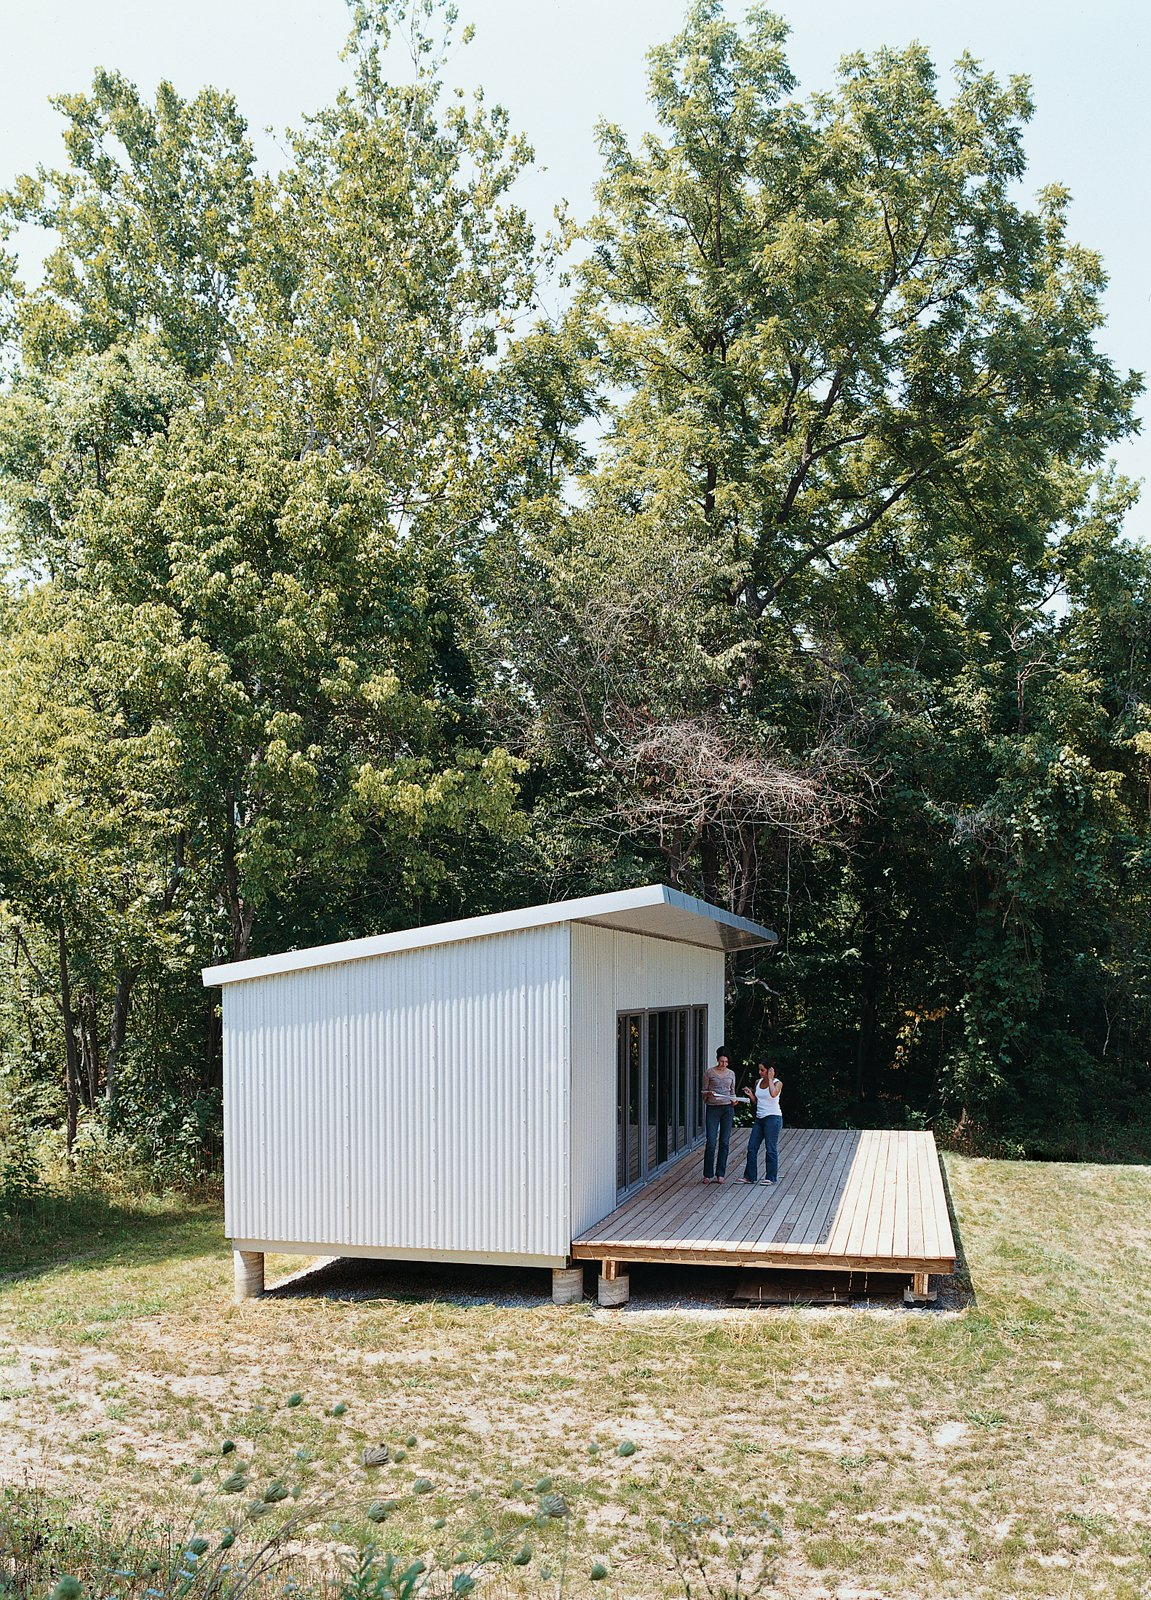 Exterior, Prefab Building Type, and House Building Type Romero and product manager Julie Schaefer at the Base Camp prototype .  Best Photos from All You Need Is LV